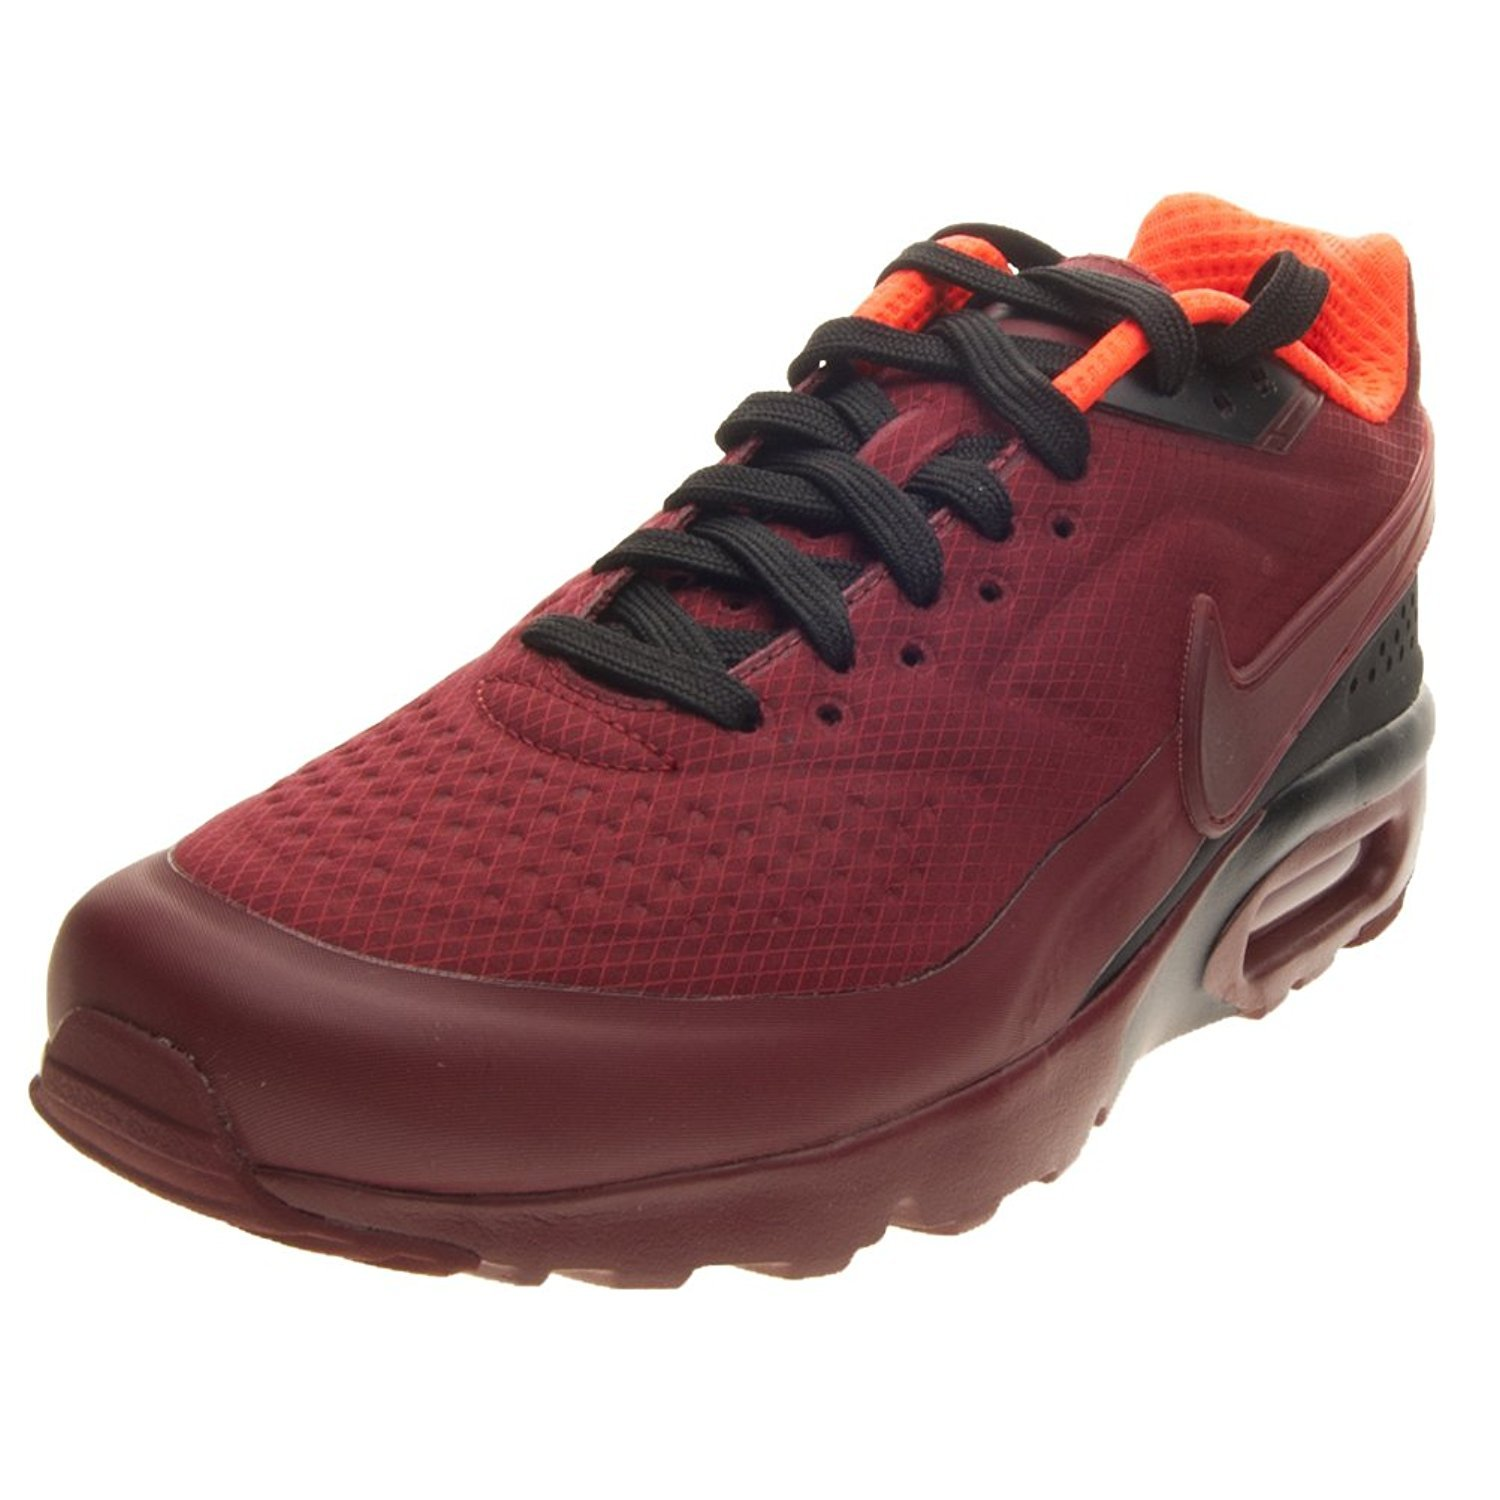 new style 079d3 12a1d Galleon - Nike Mens Air Max BW Ultra SE Red Textile Trainers 10.5 US